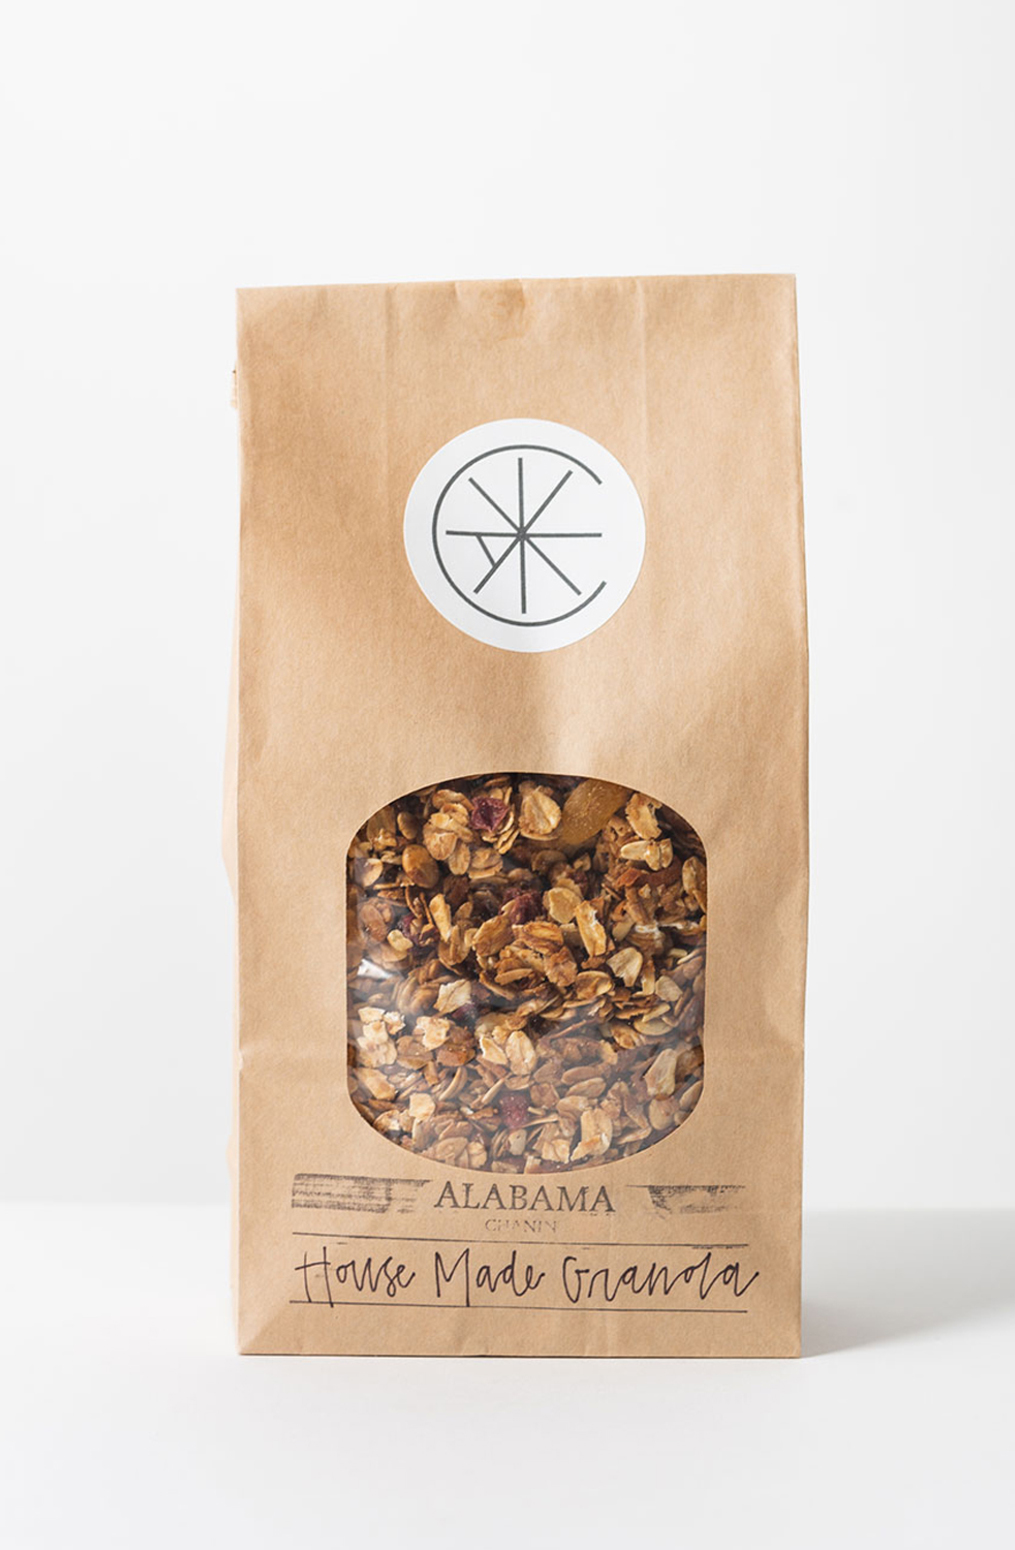 Alabama chanin house made granola the factory cafe 2